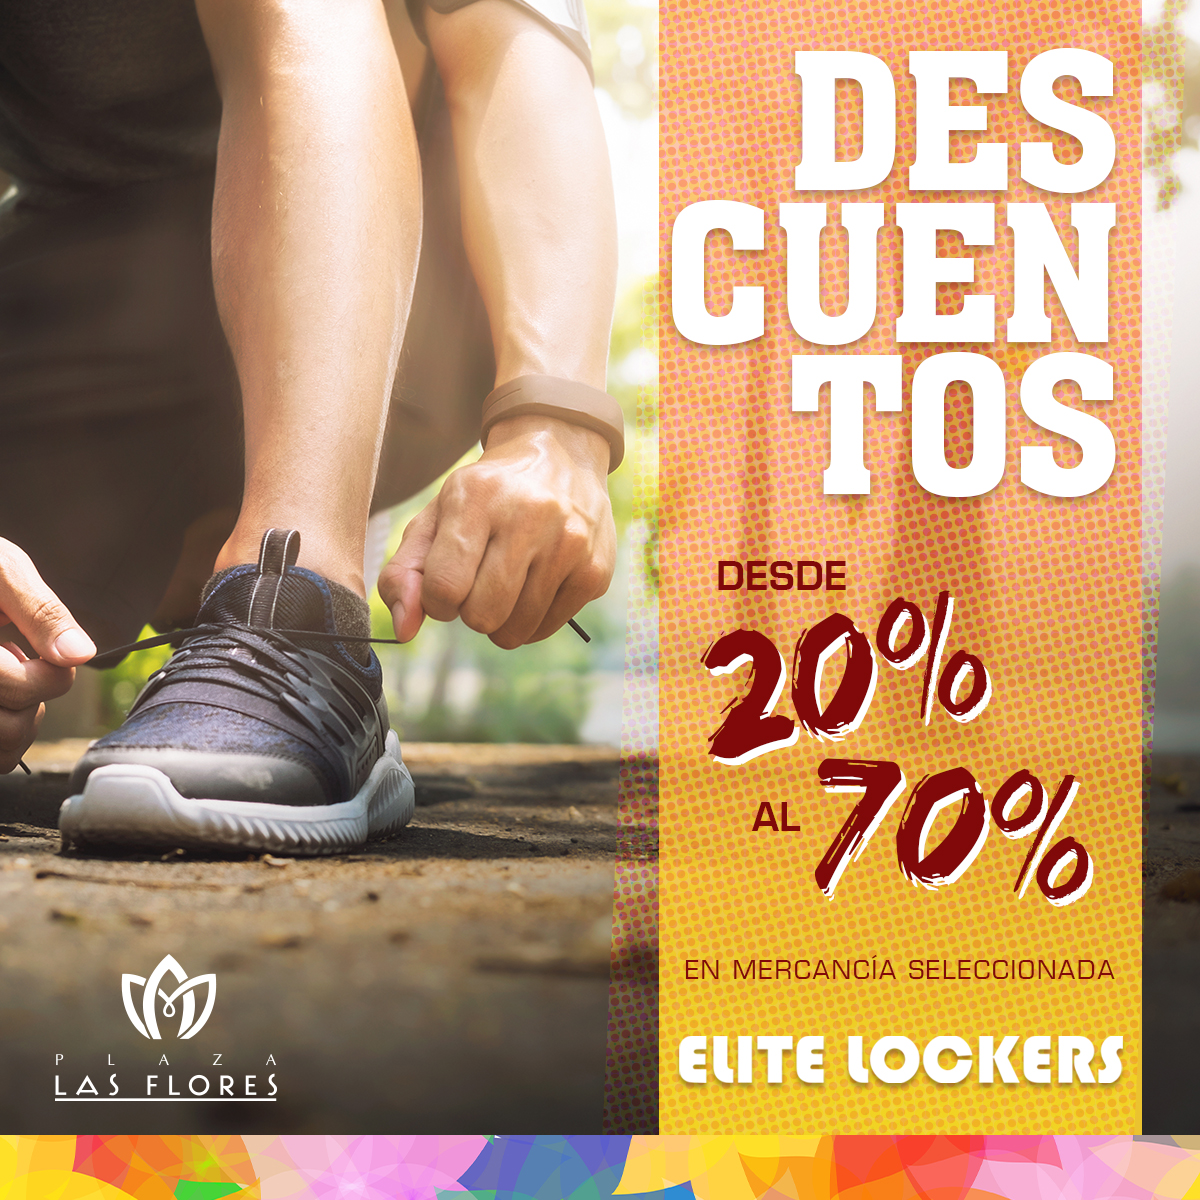 LasFlores-Ofertas-EliteLockers copy